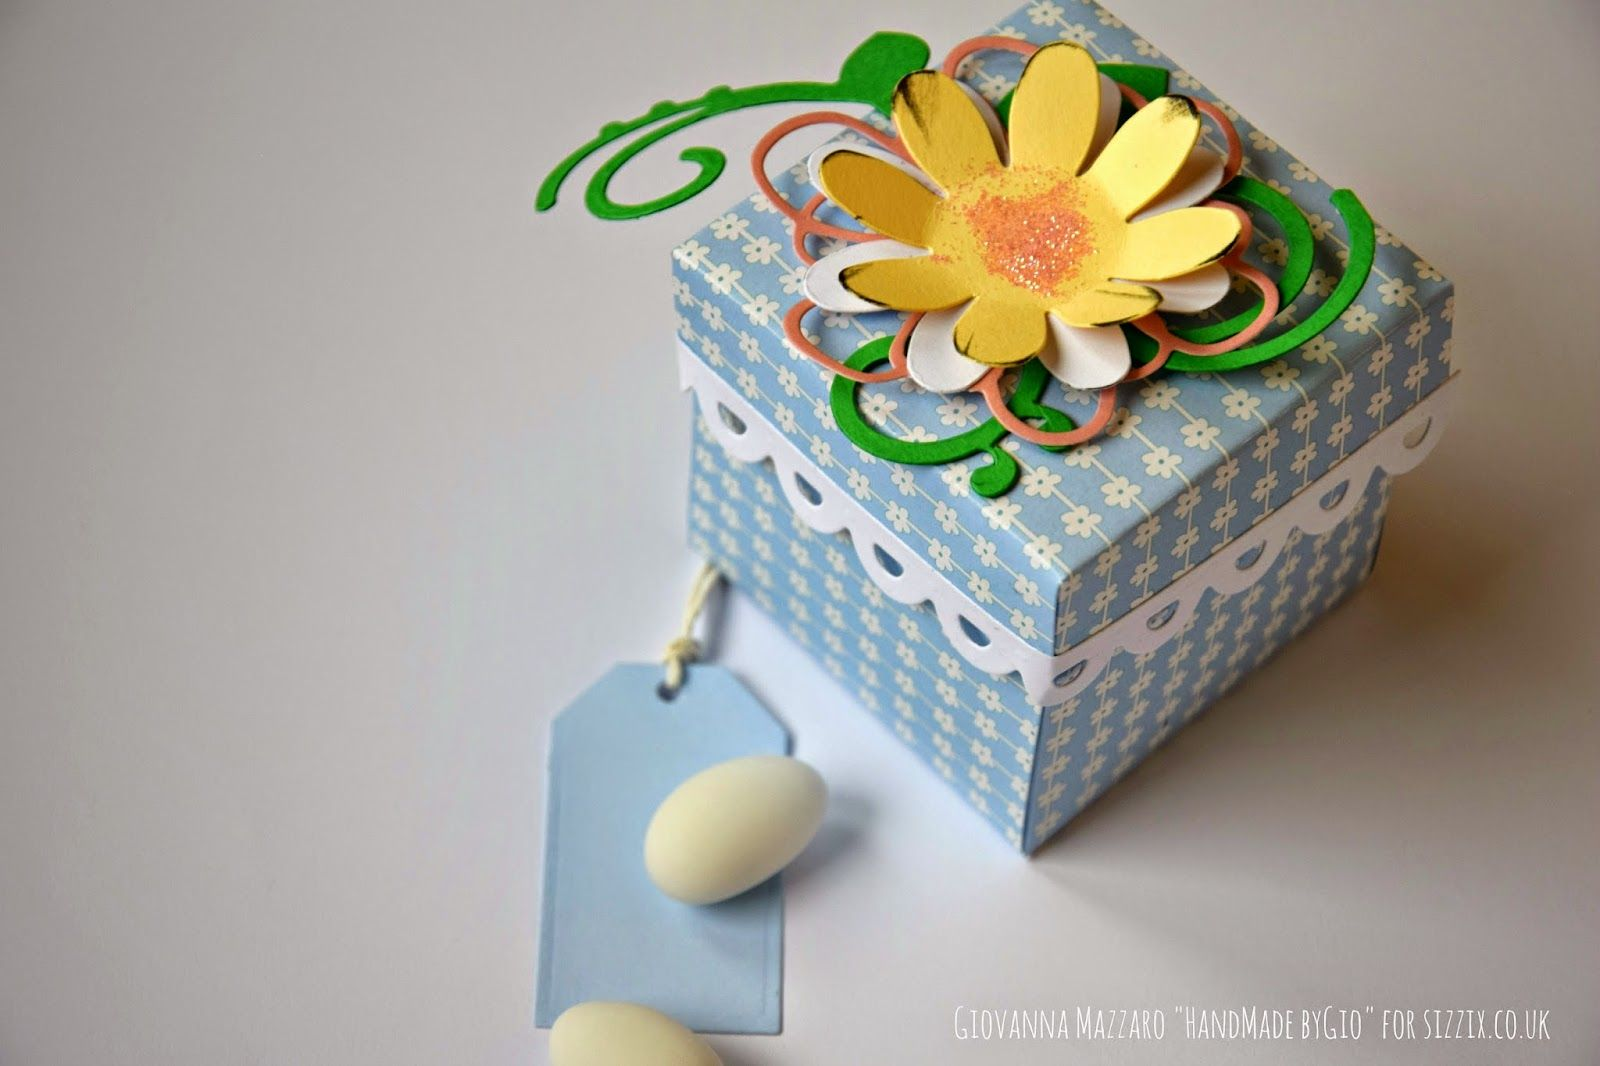 Crafting ideas from Sizzix UK: Favor box